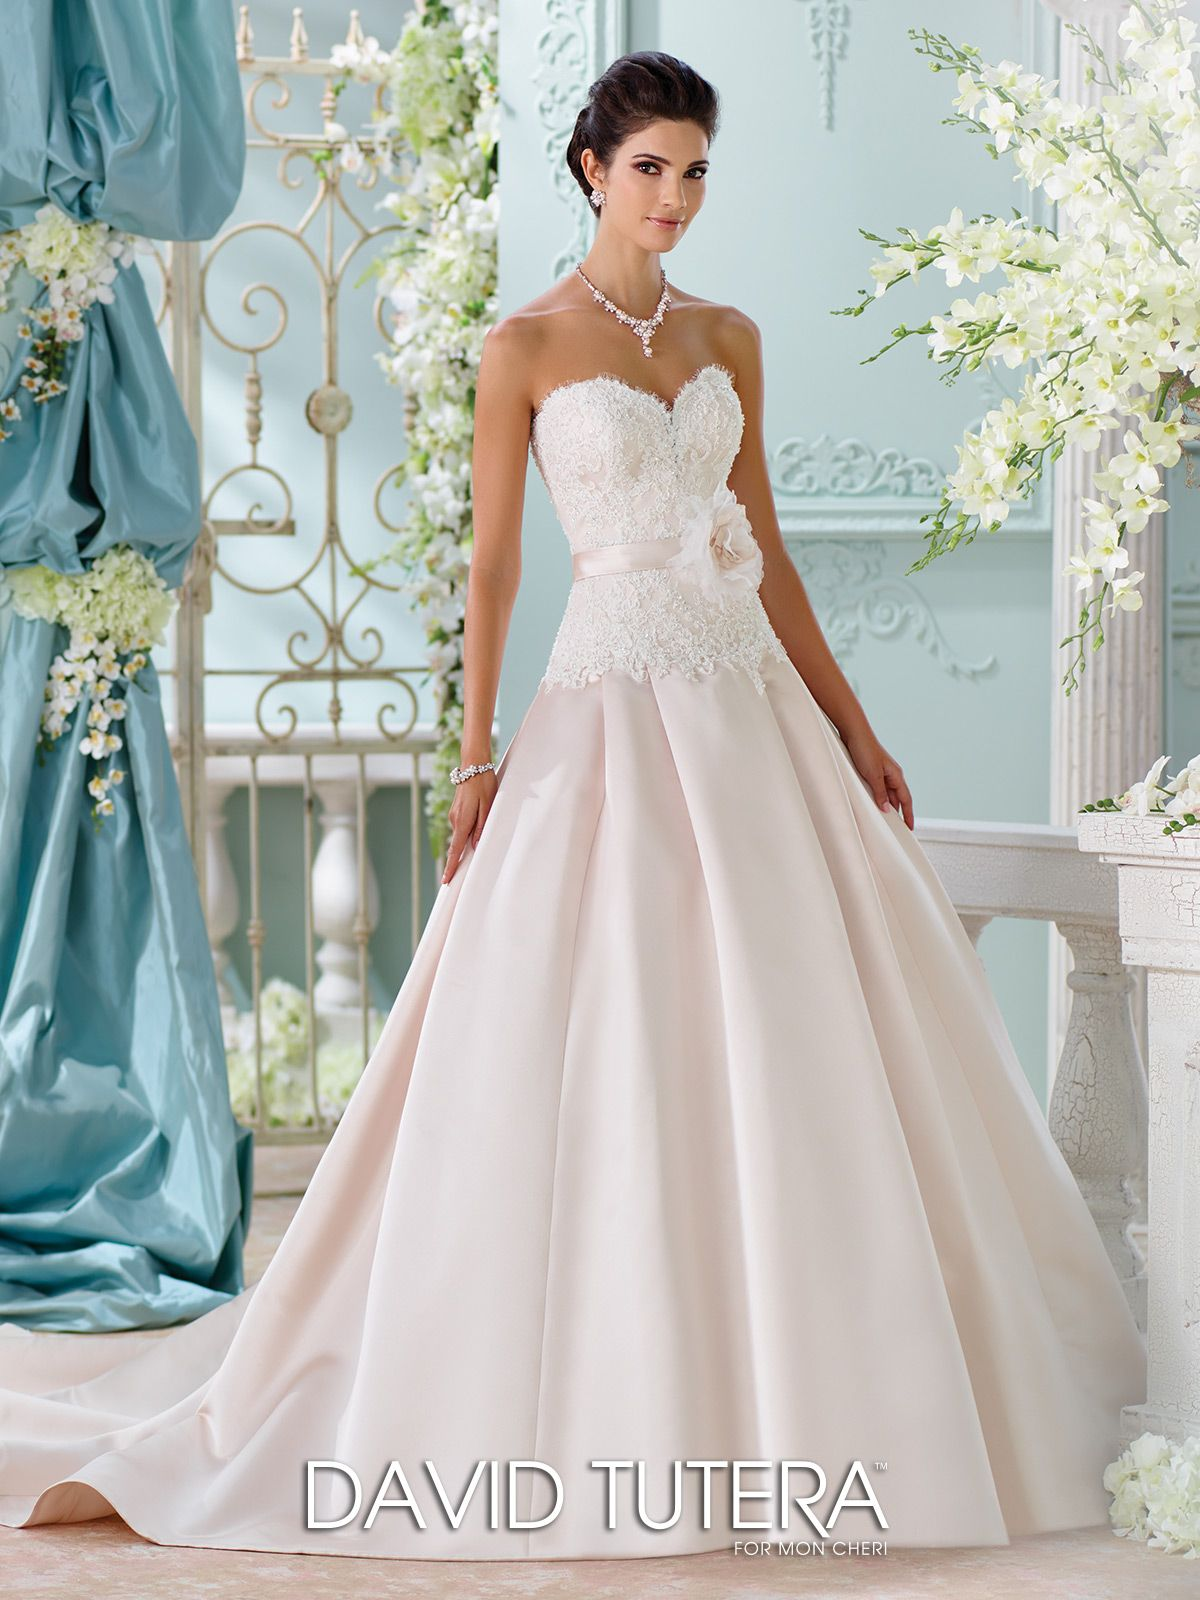 Champagne Satin Hand Beaded Lace Wedding Dress 116215 Lucienne